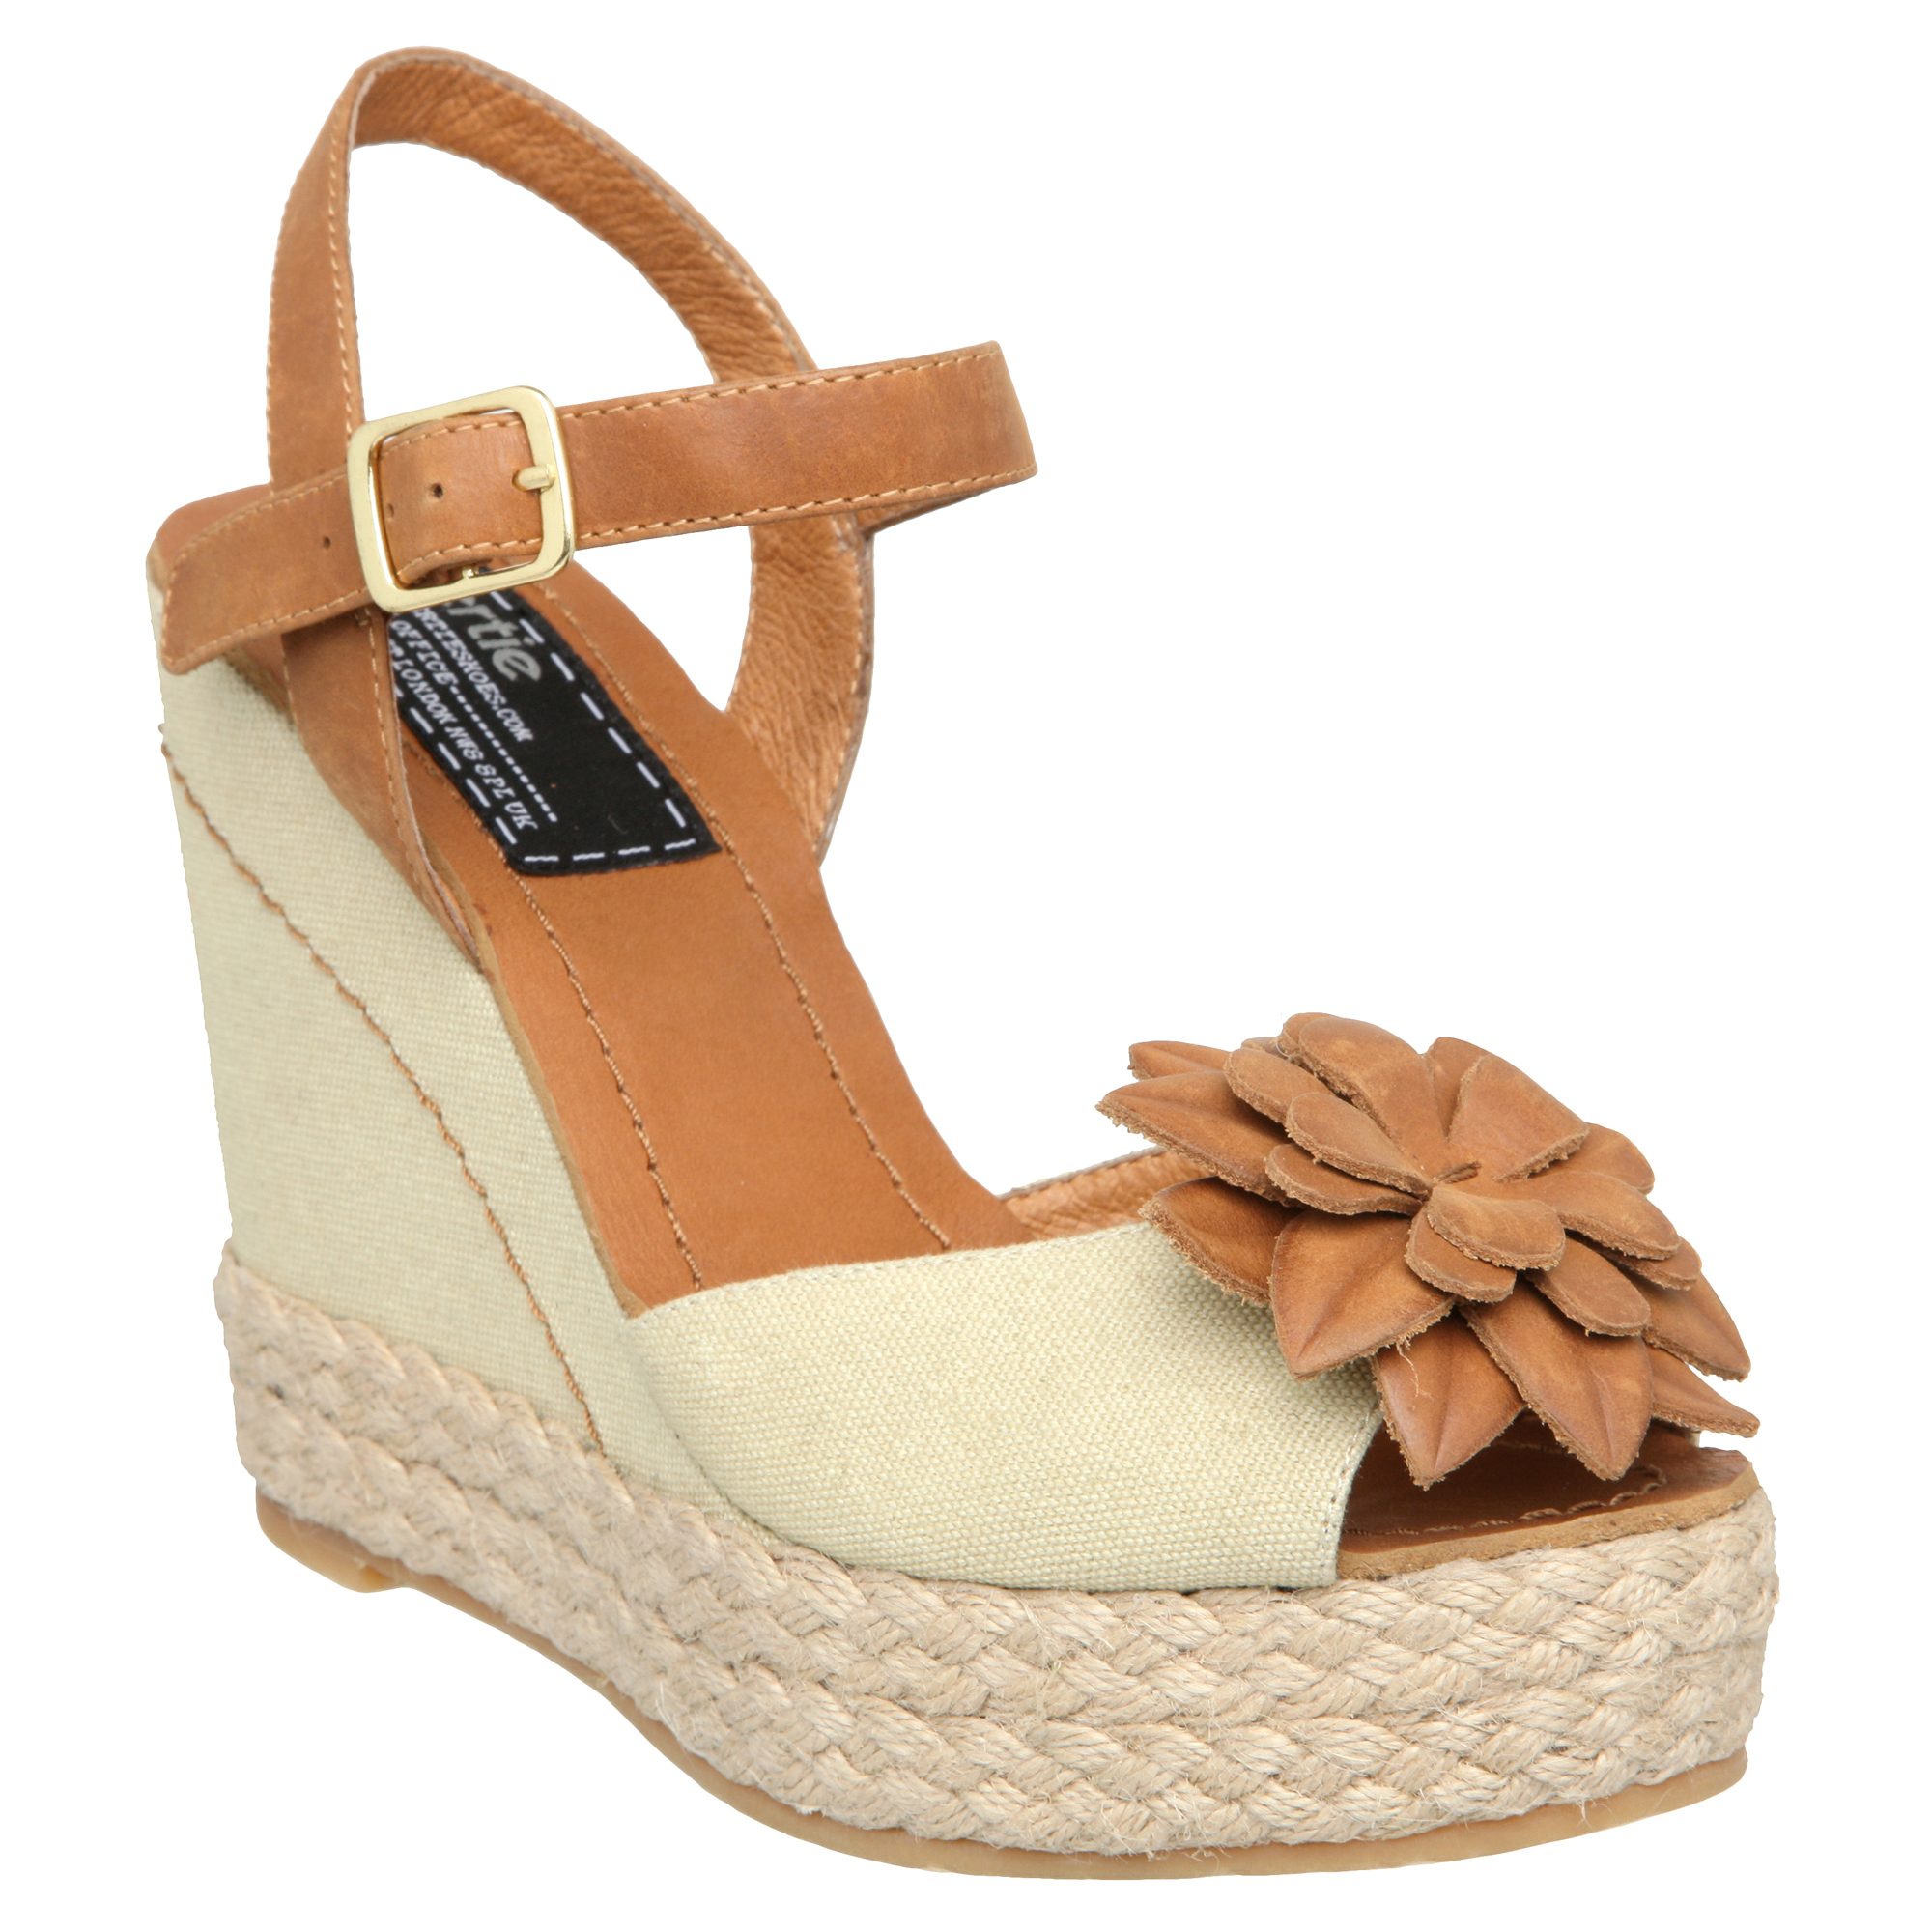 Tan Wedge Shoes Size